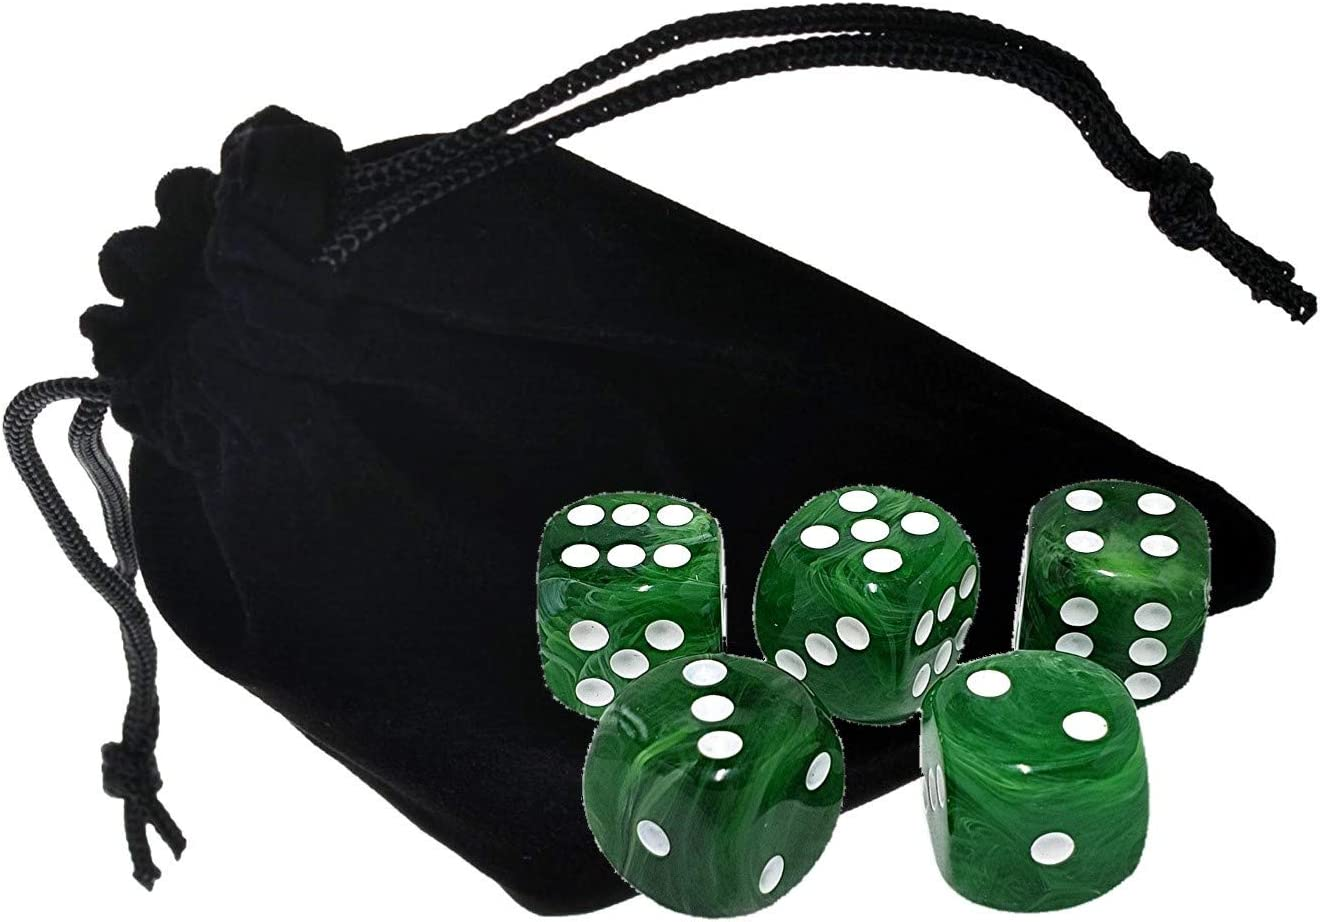 Cyber-Deals Set of (5) 16mm Deluxe High Qualilty Acrylic 6-Sided Round Cornered Swirl Dice with Black Velvet Cloth Pouch Bag 61vMpSXeO-L